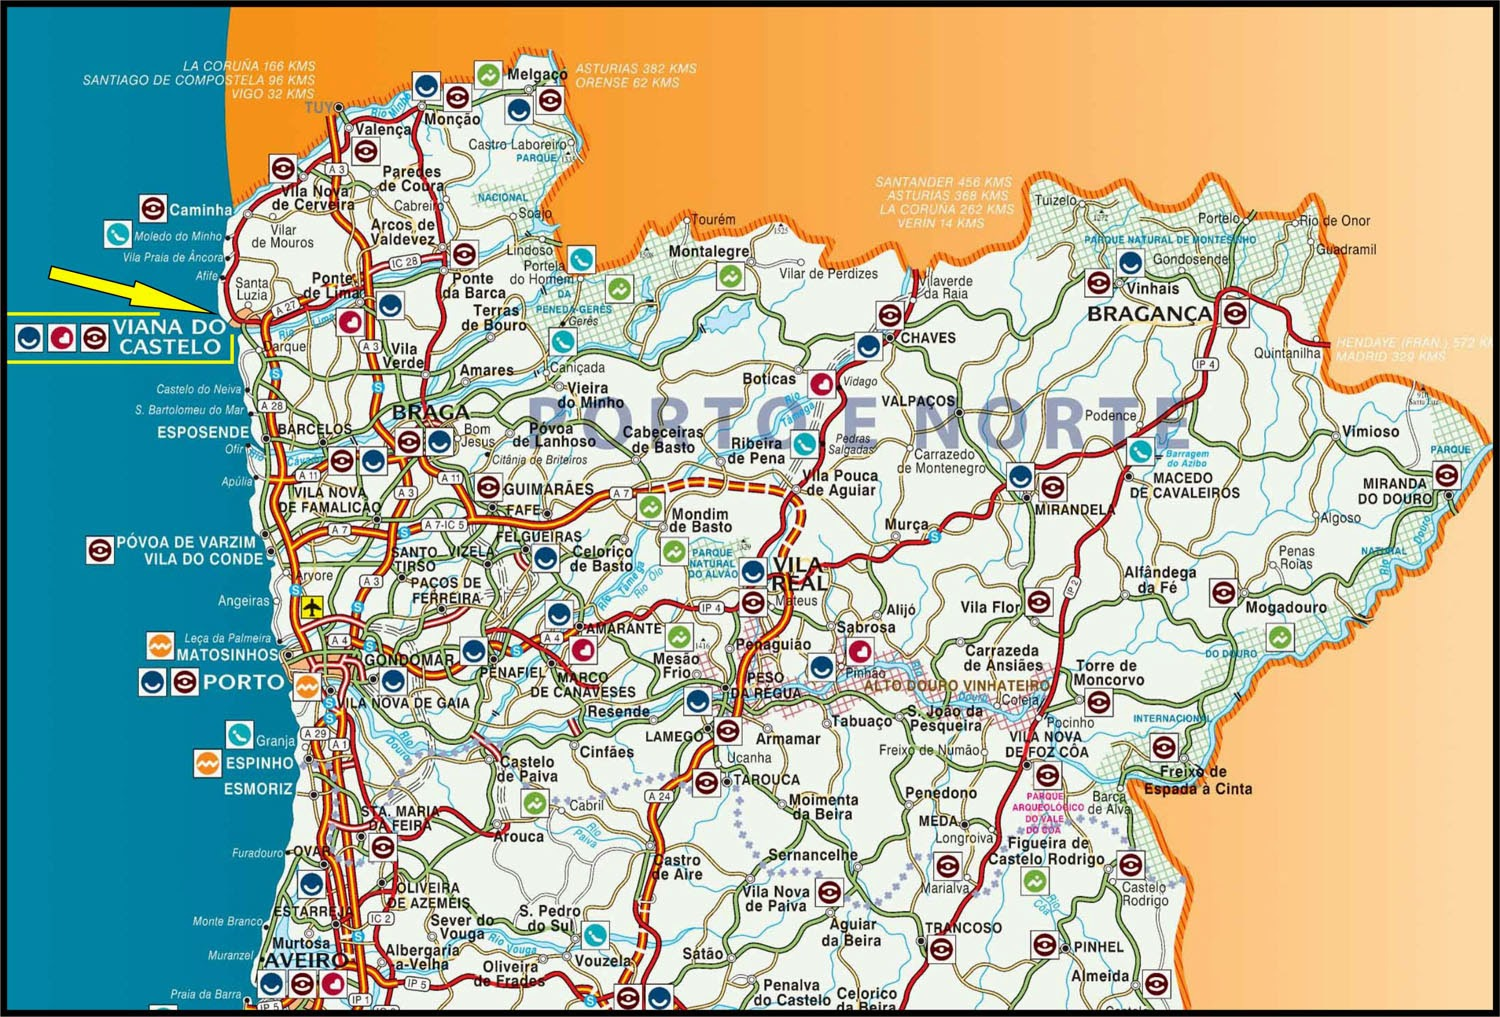 viana do castelo mapa portugal Mapas de Viana do Castelo   Portugal | MapasBlog viana do castelo mapa portugal